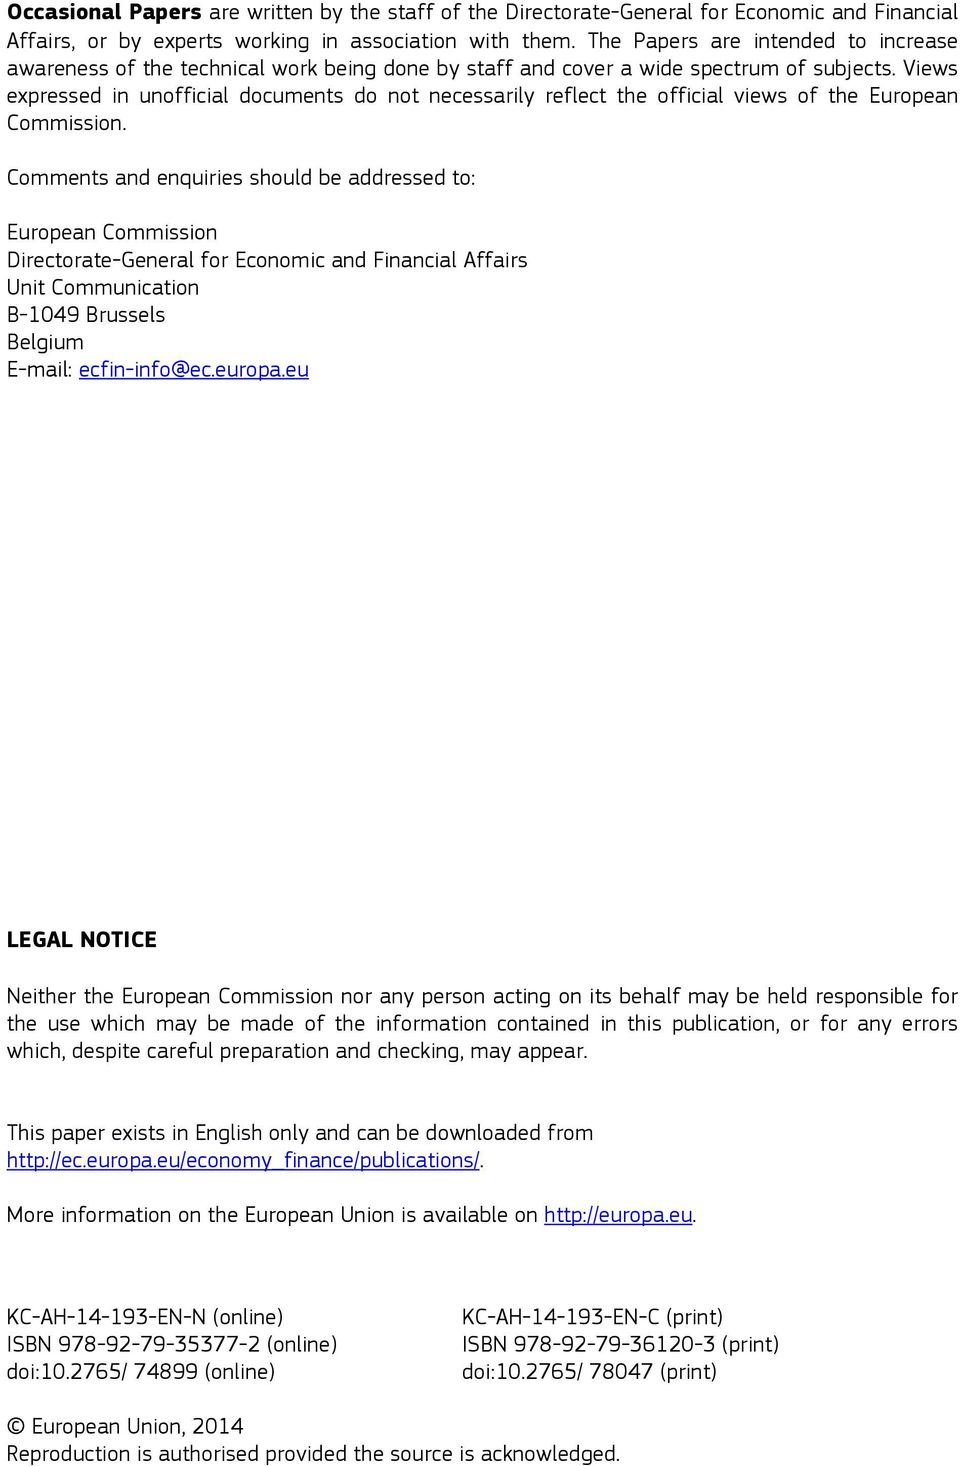 Views expressed in unofficial documents do not necessarily reflect the official views of the European Commission.